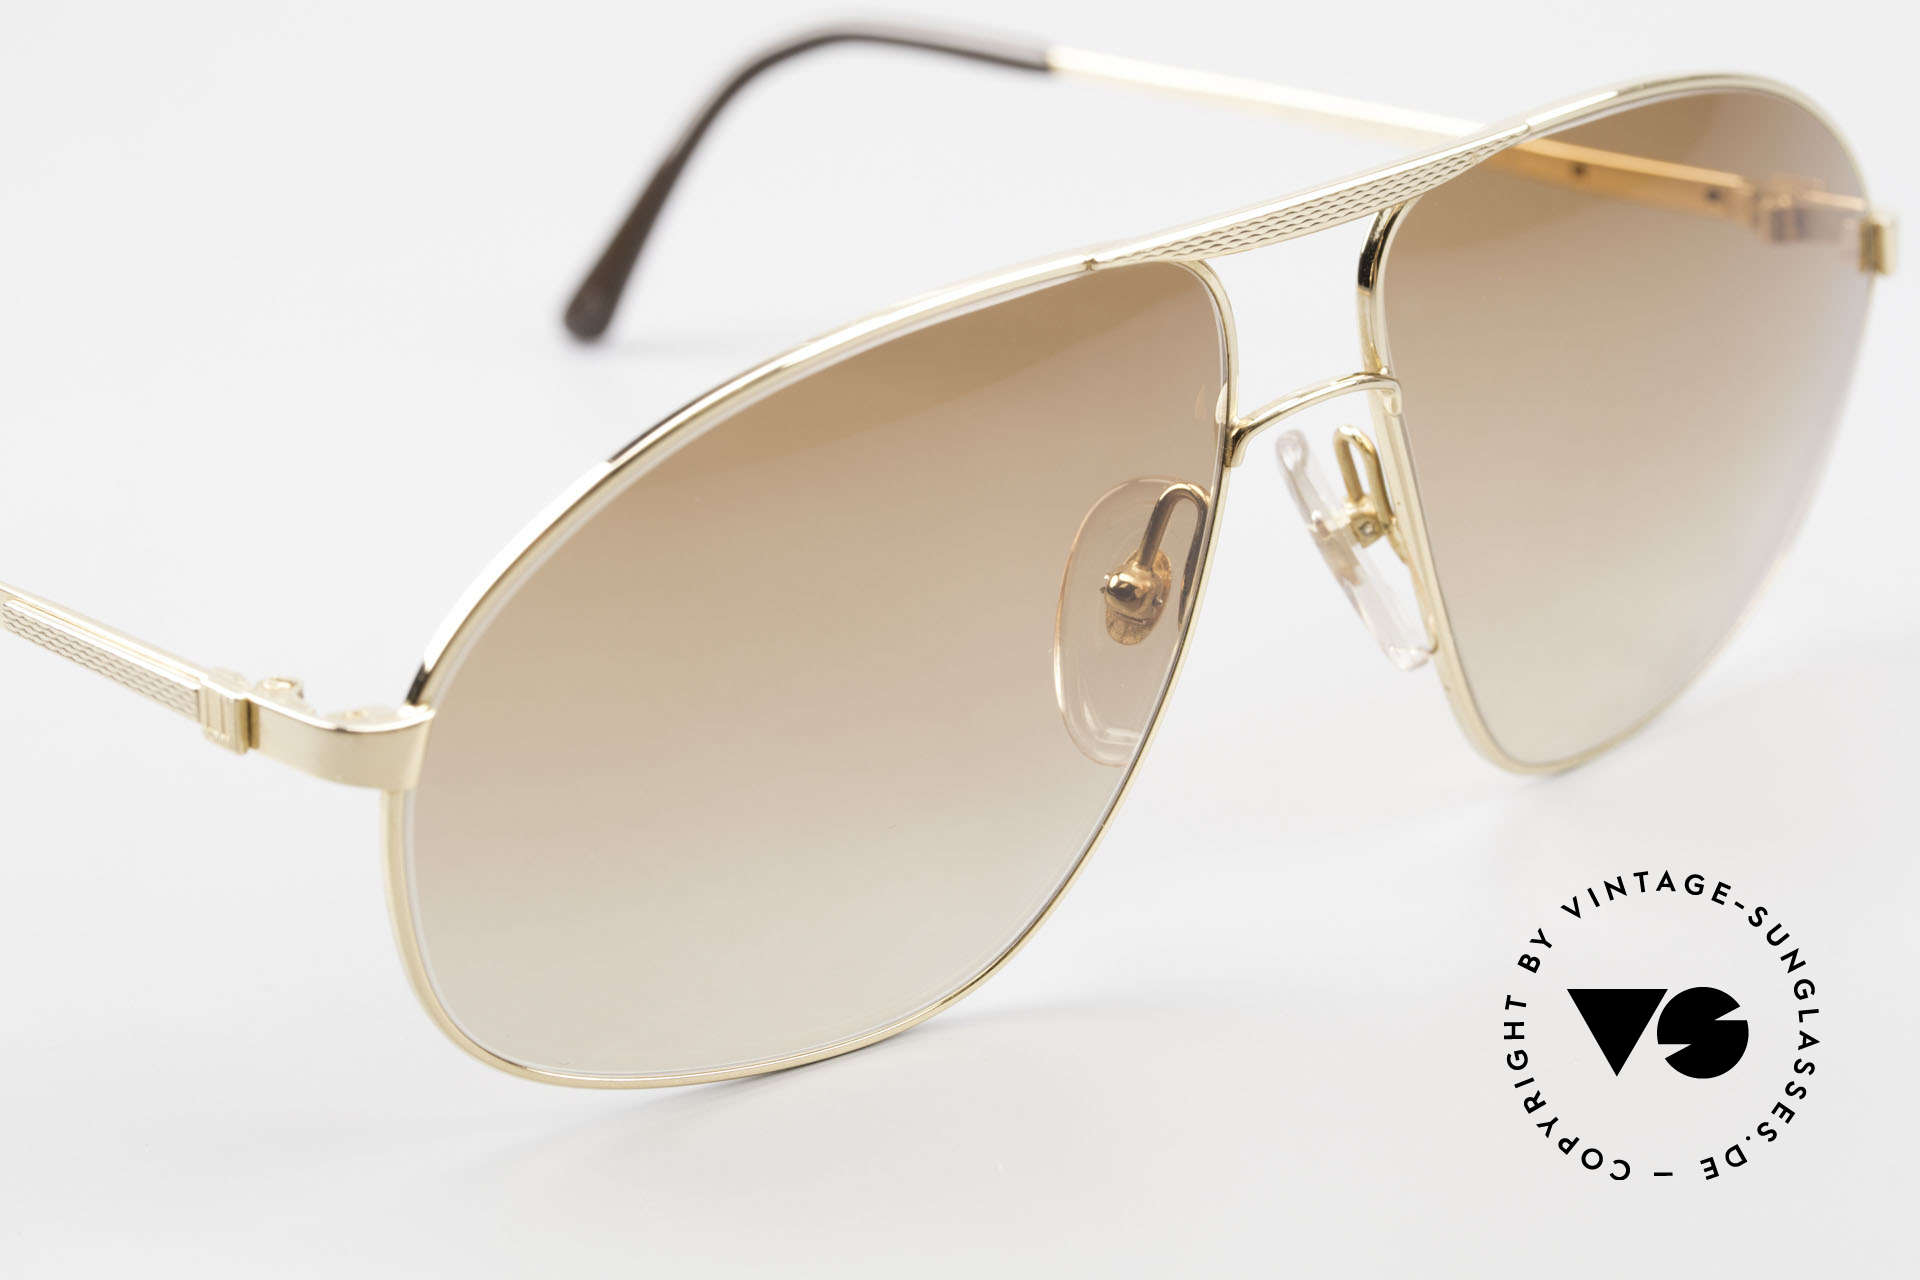 Dunhill 6125 Gold Plated Aviator Frame 90's, unworn (like all our rare vintage Alfred Dunhill eyewear), Made for Men